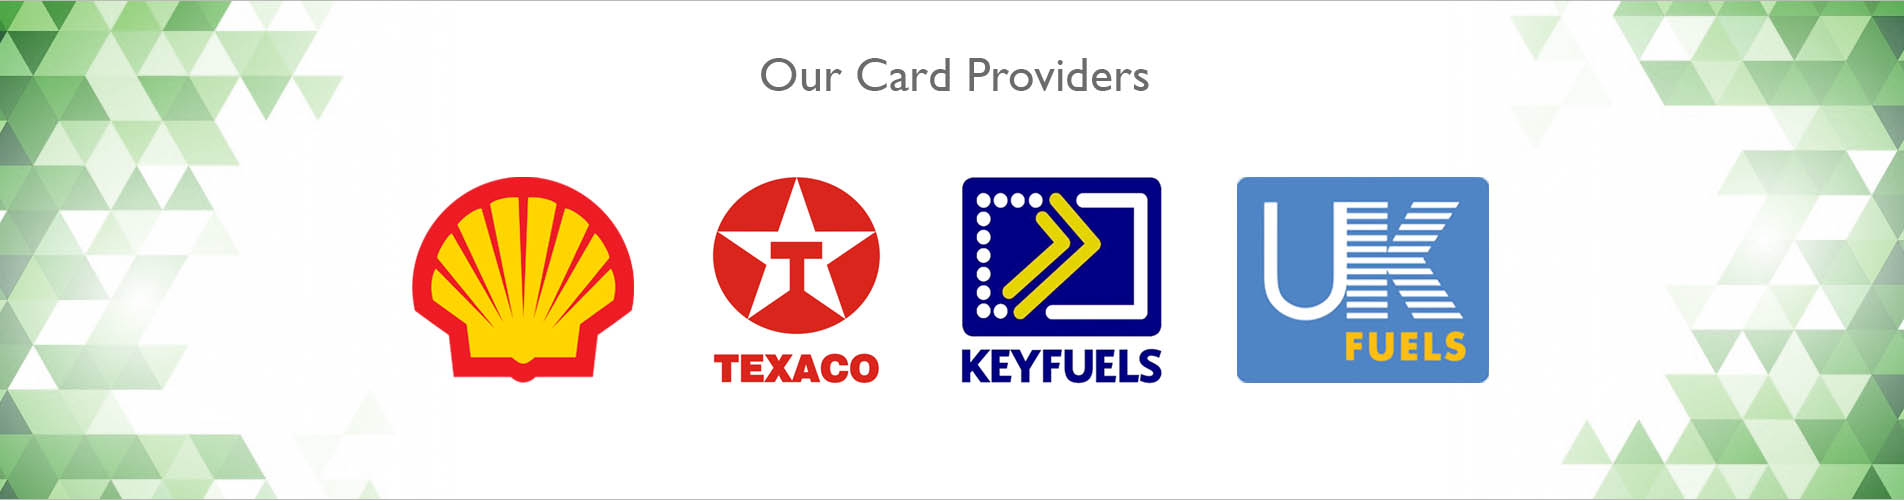 our card providers - shell , texaco , keyfuels , ukfuels